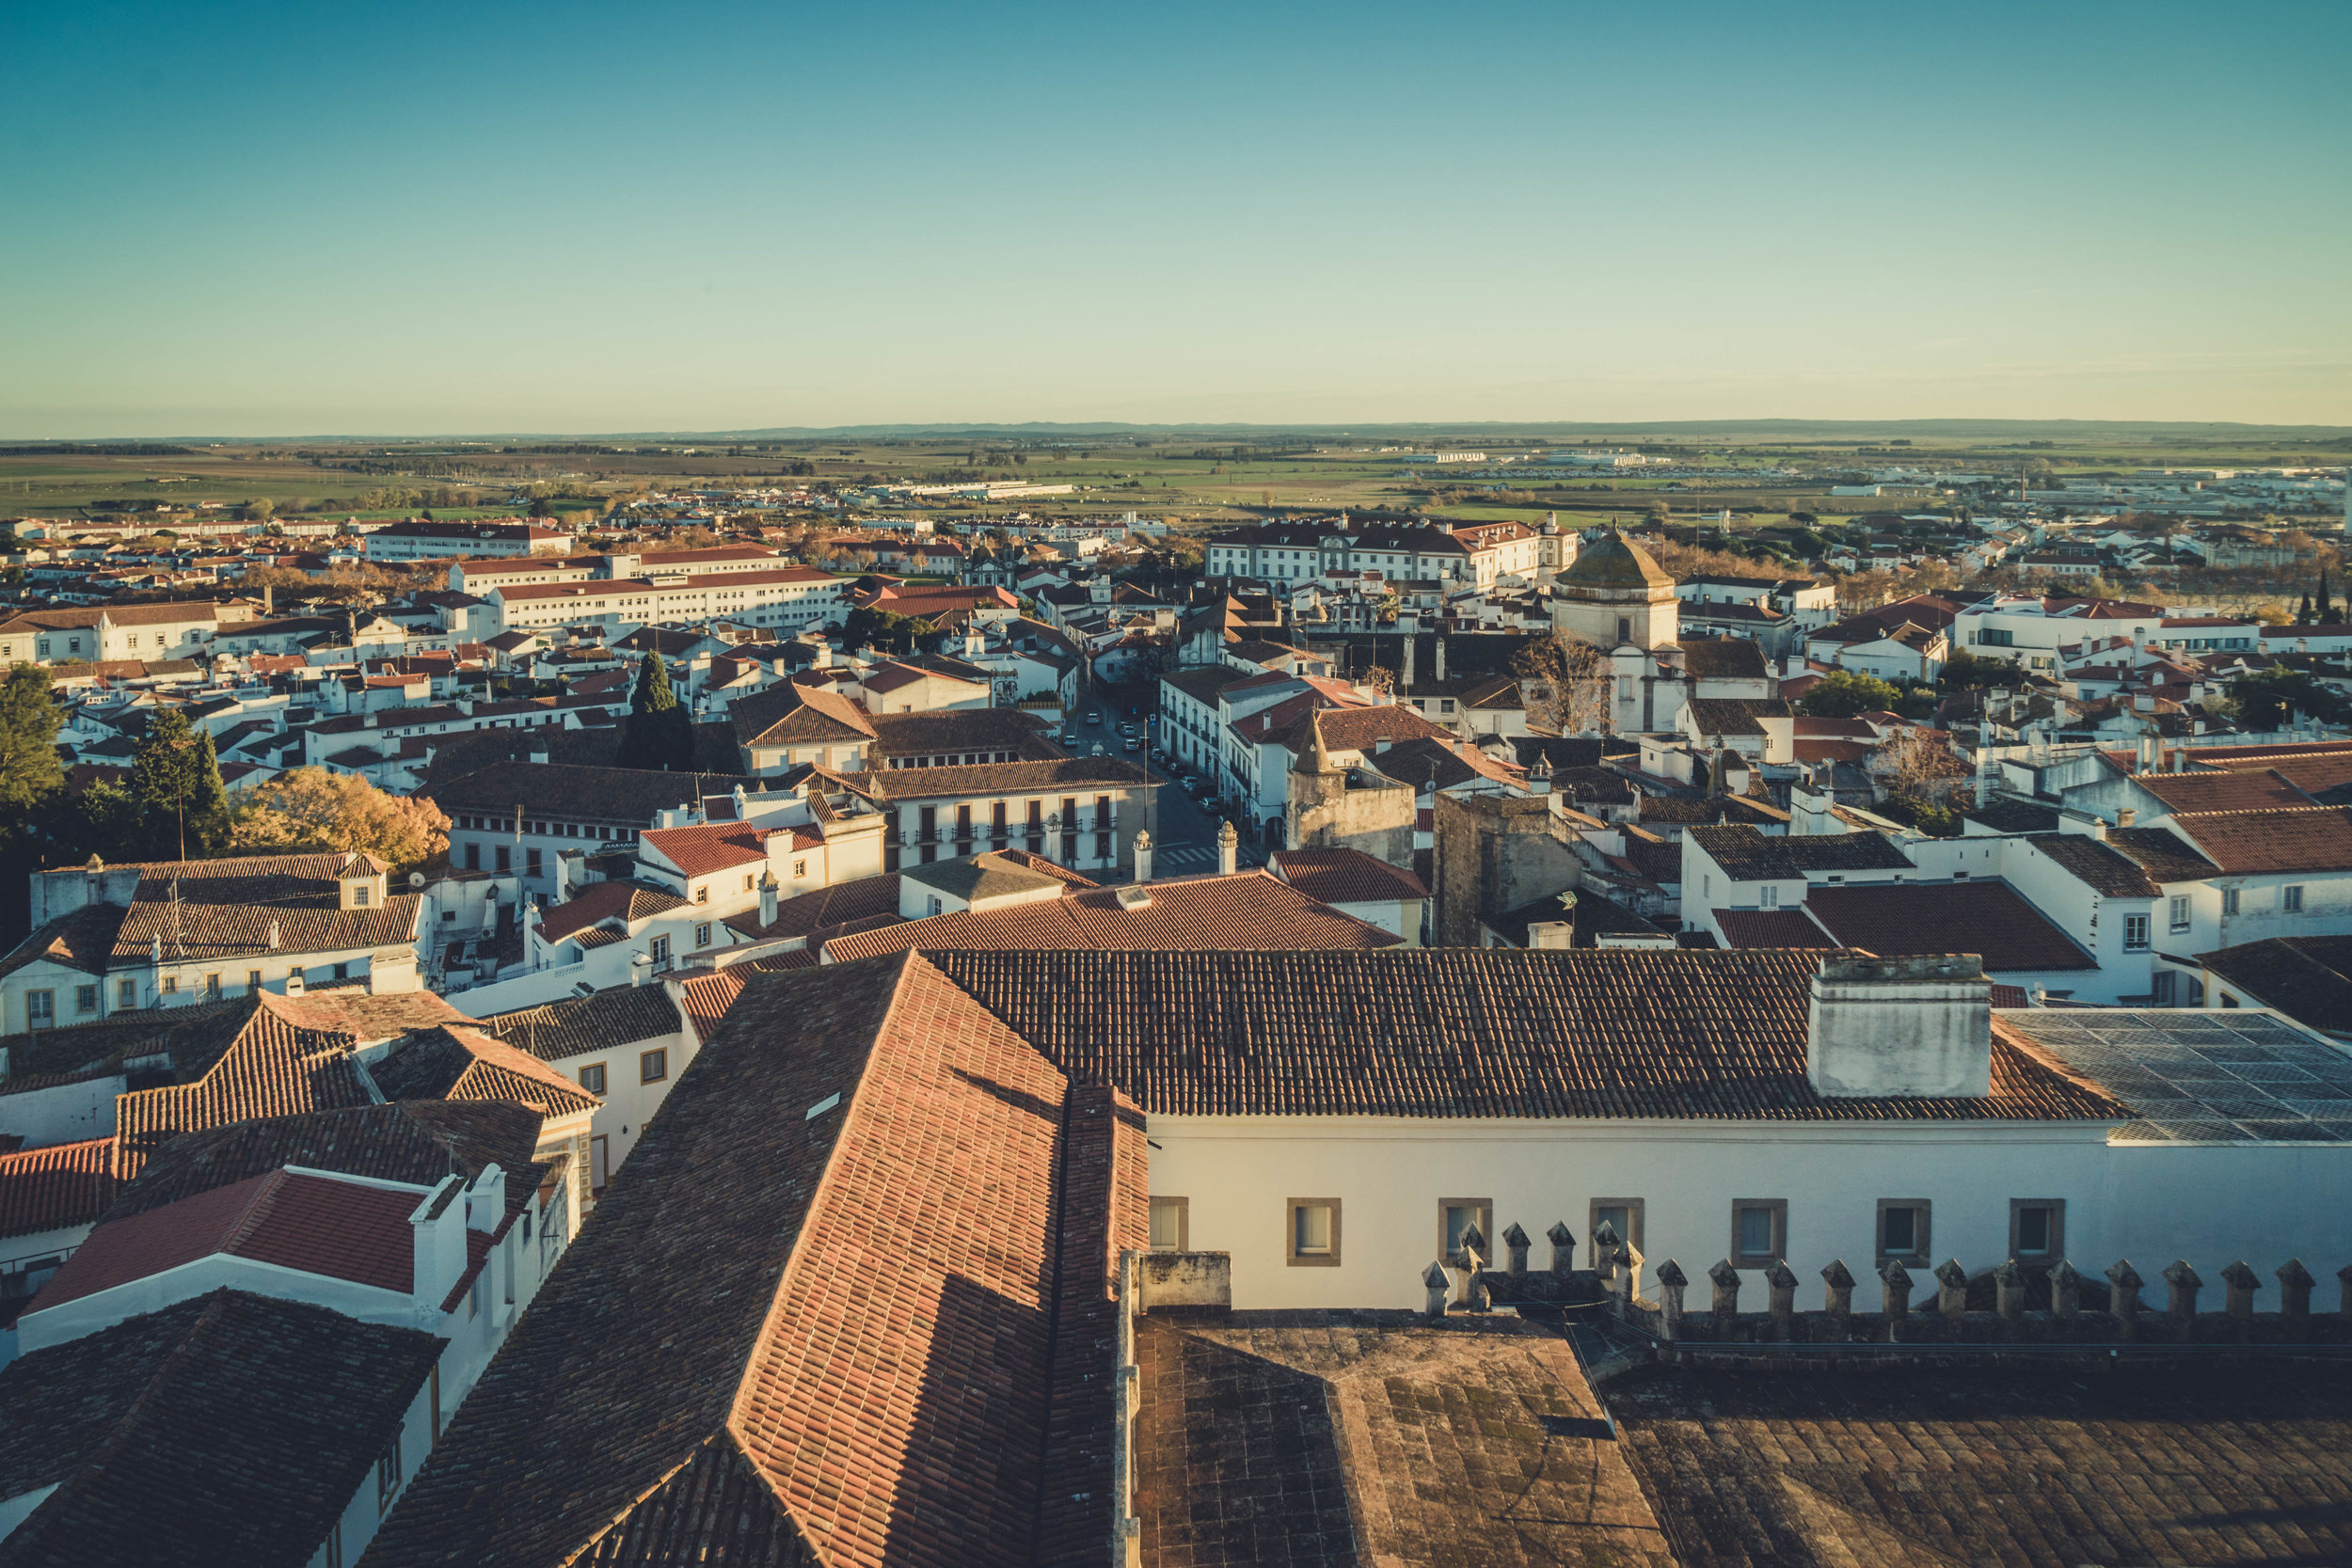 Evora. Roman Ruins. Portugal. Alentejo. Piliers. Roman city. ancient roman town. Blue sky. travel. adventure. history. historical. wine. over looking the town.jpg